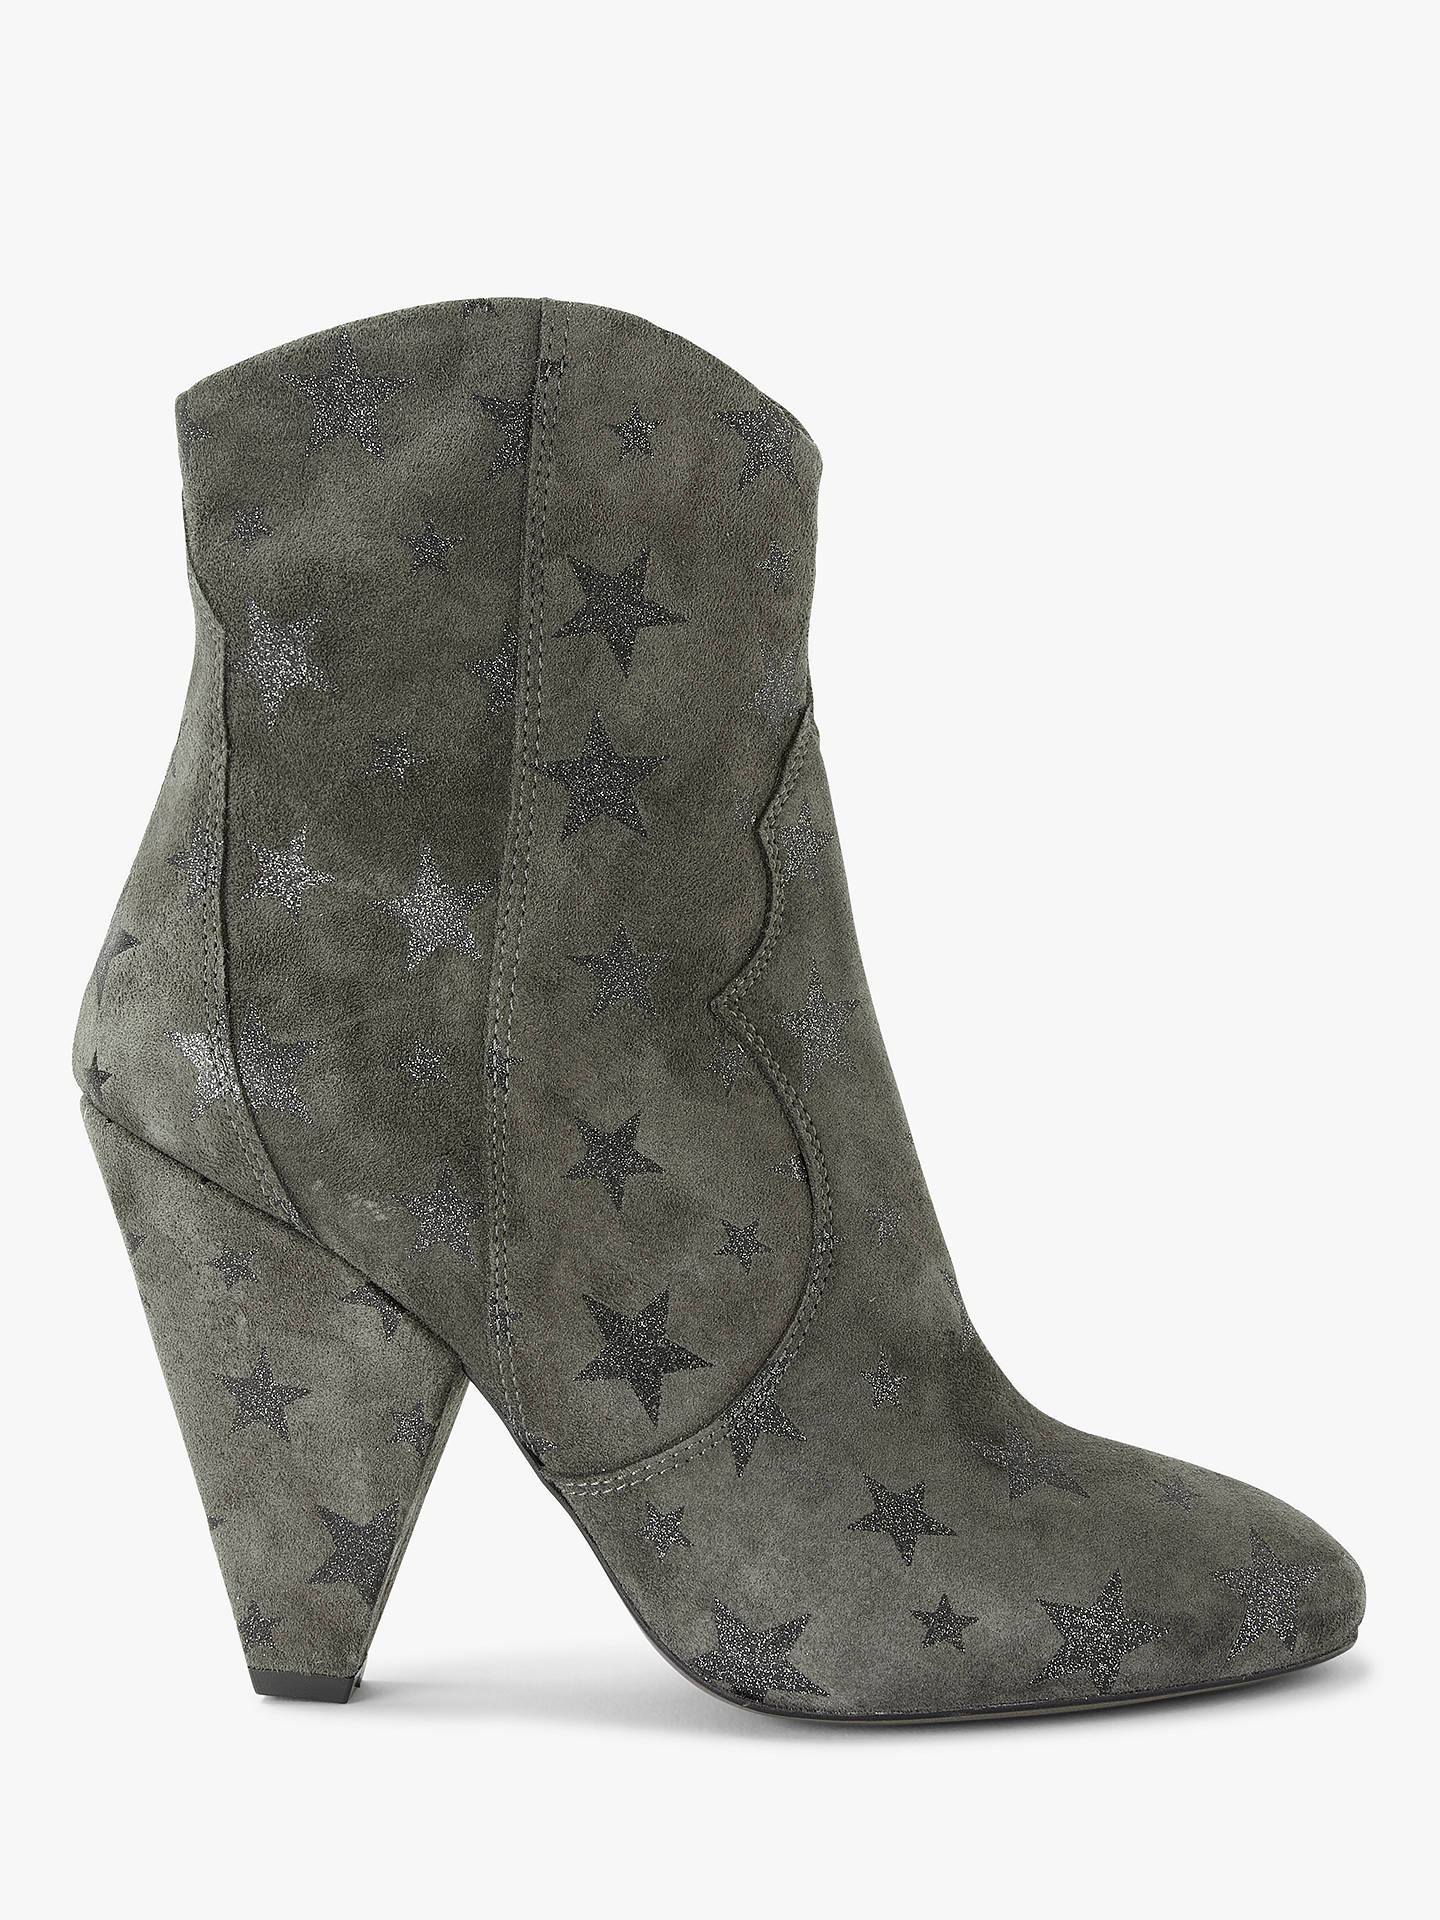 243adf29f5bce Buy AND OR Omorose Glitter Star Detail Cone Heel Boots